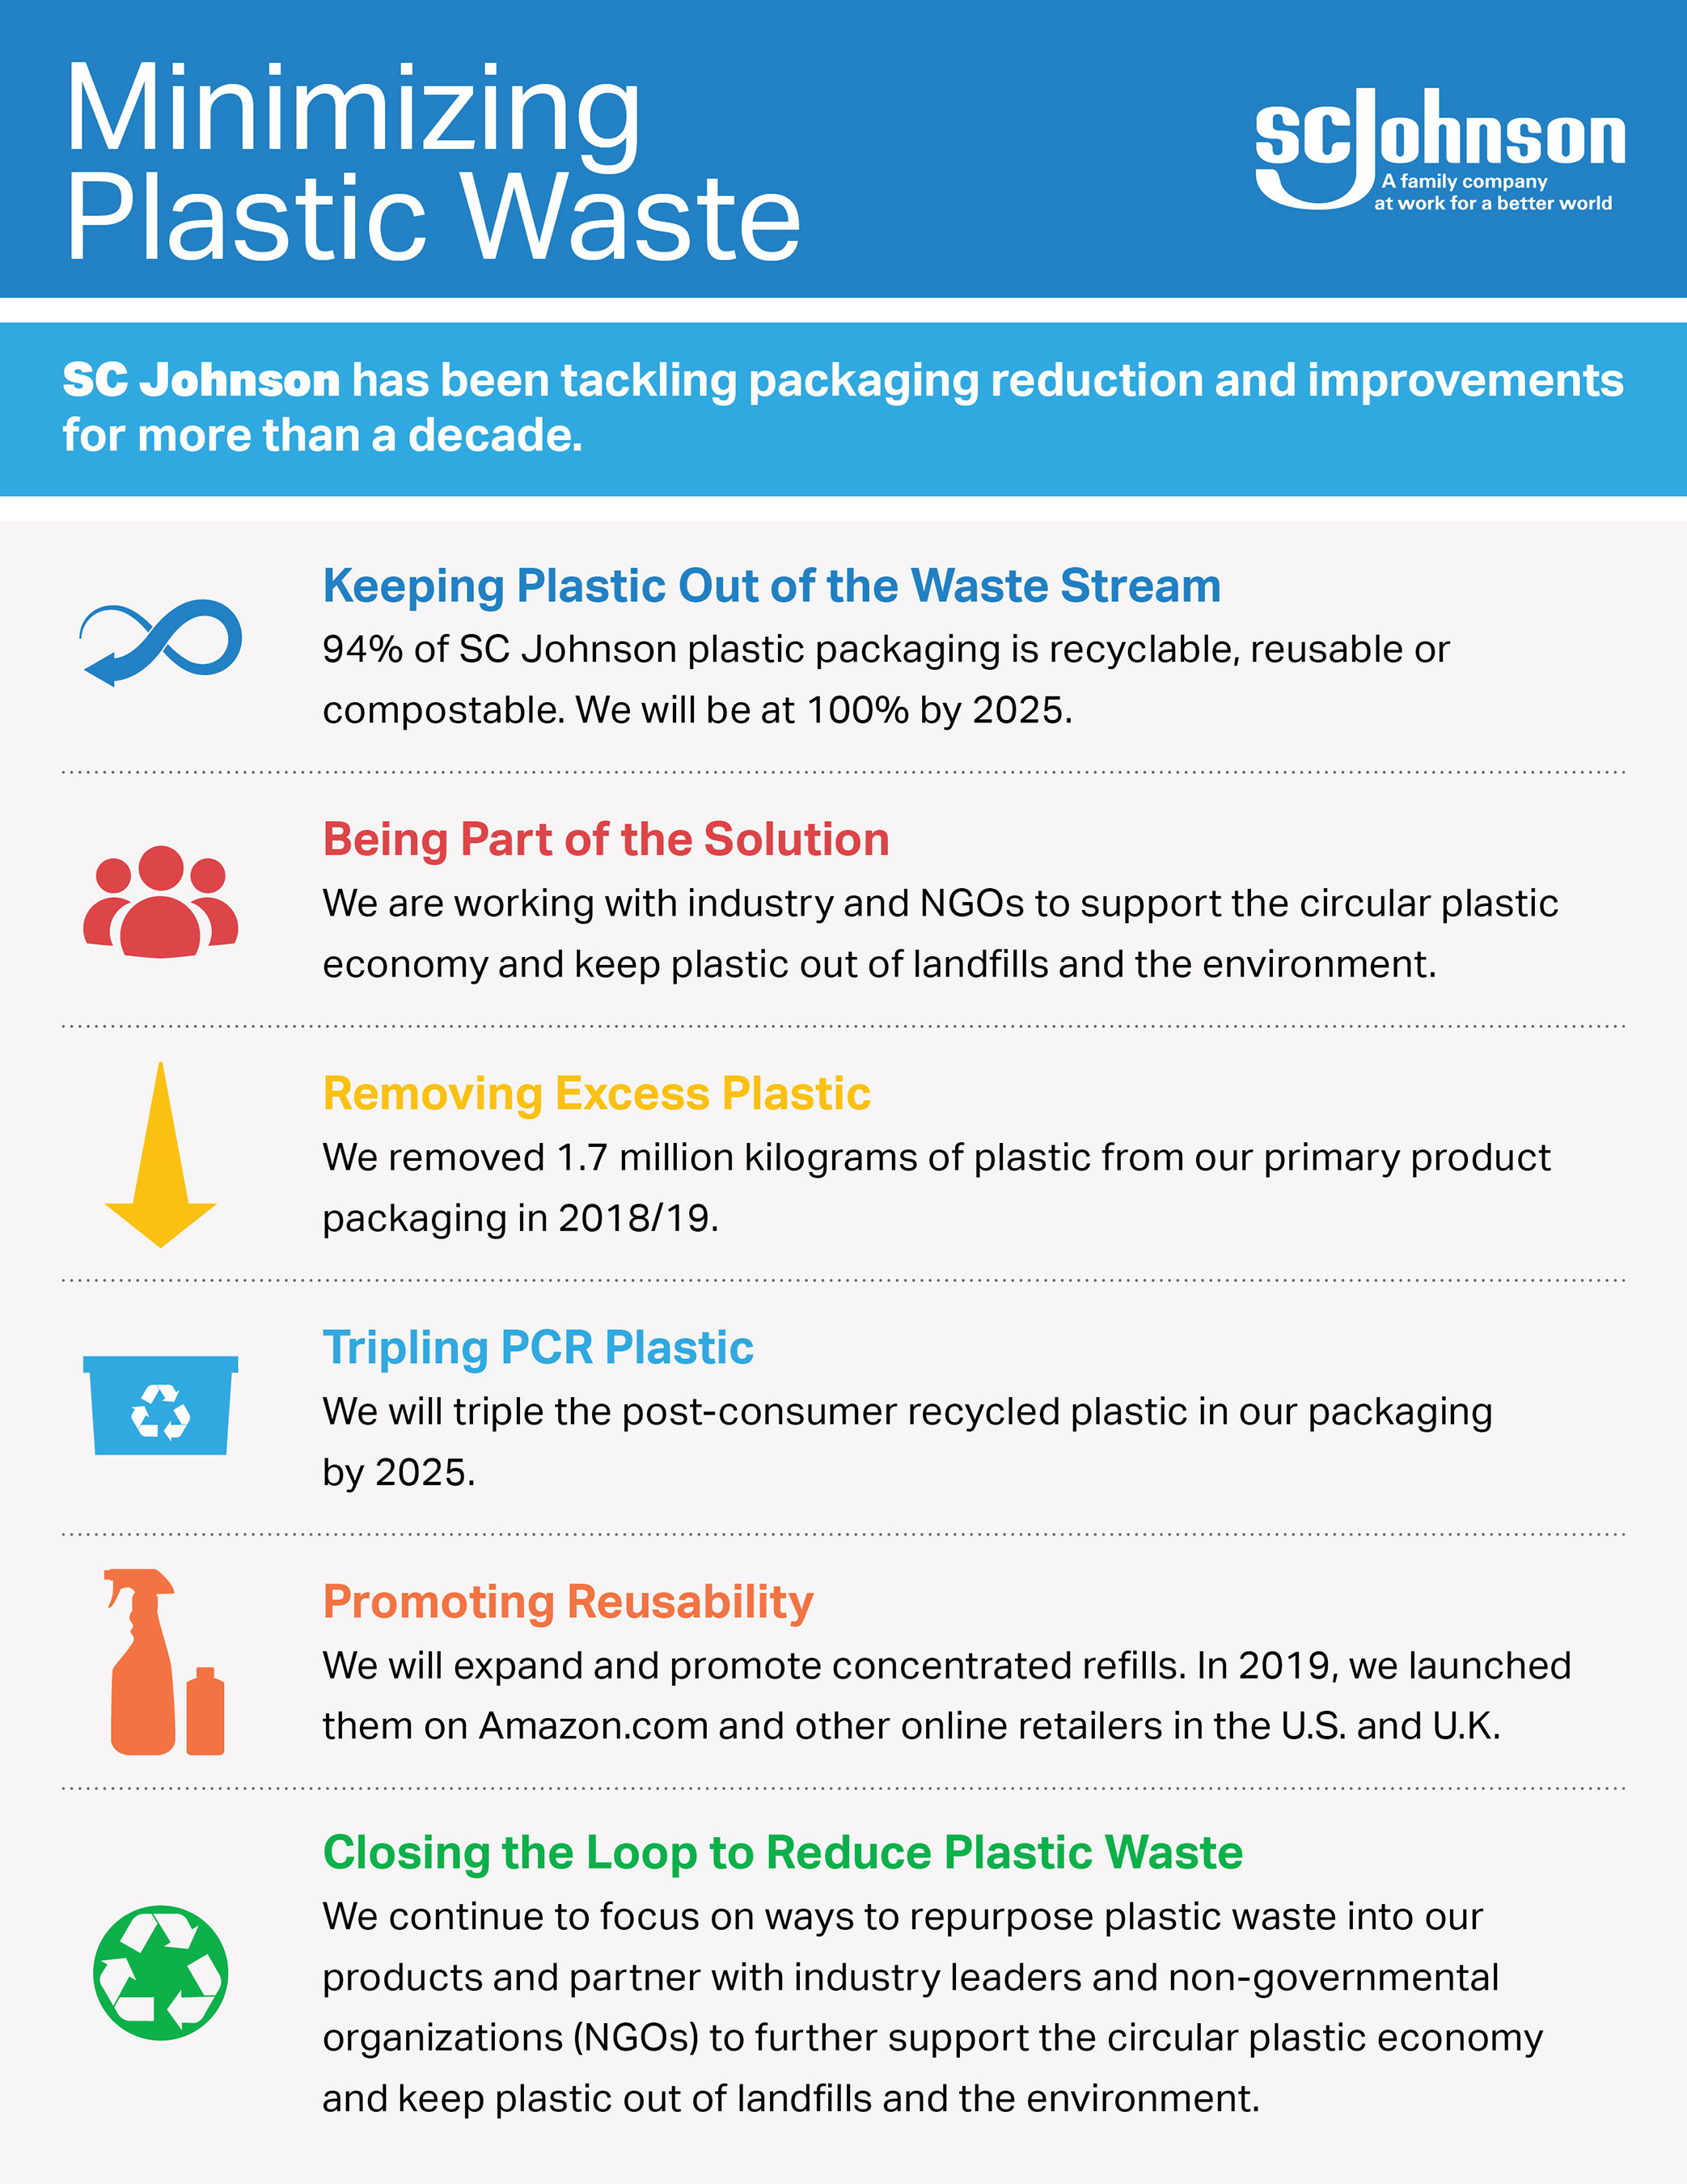 SC Johnson Minimizing Plastic Waste